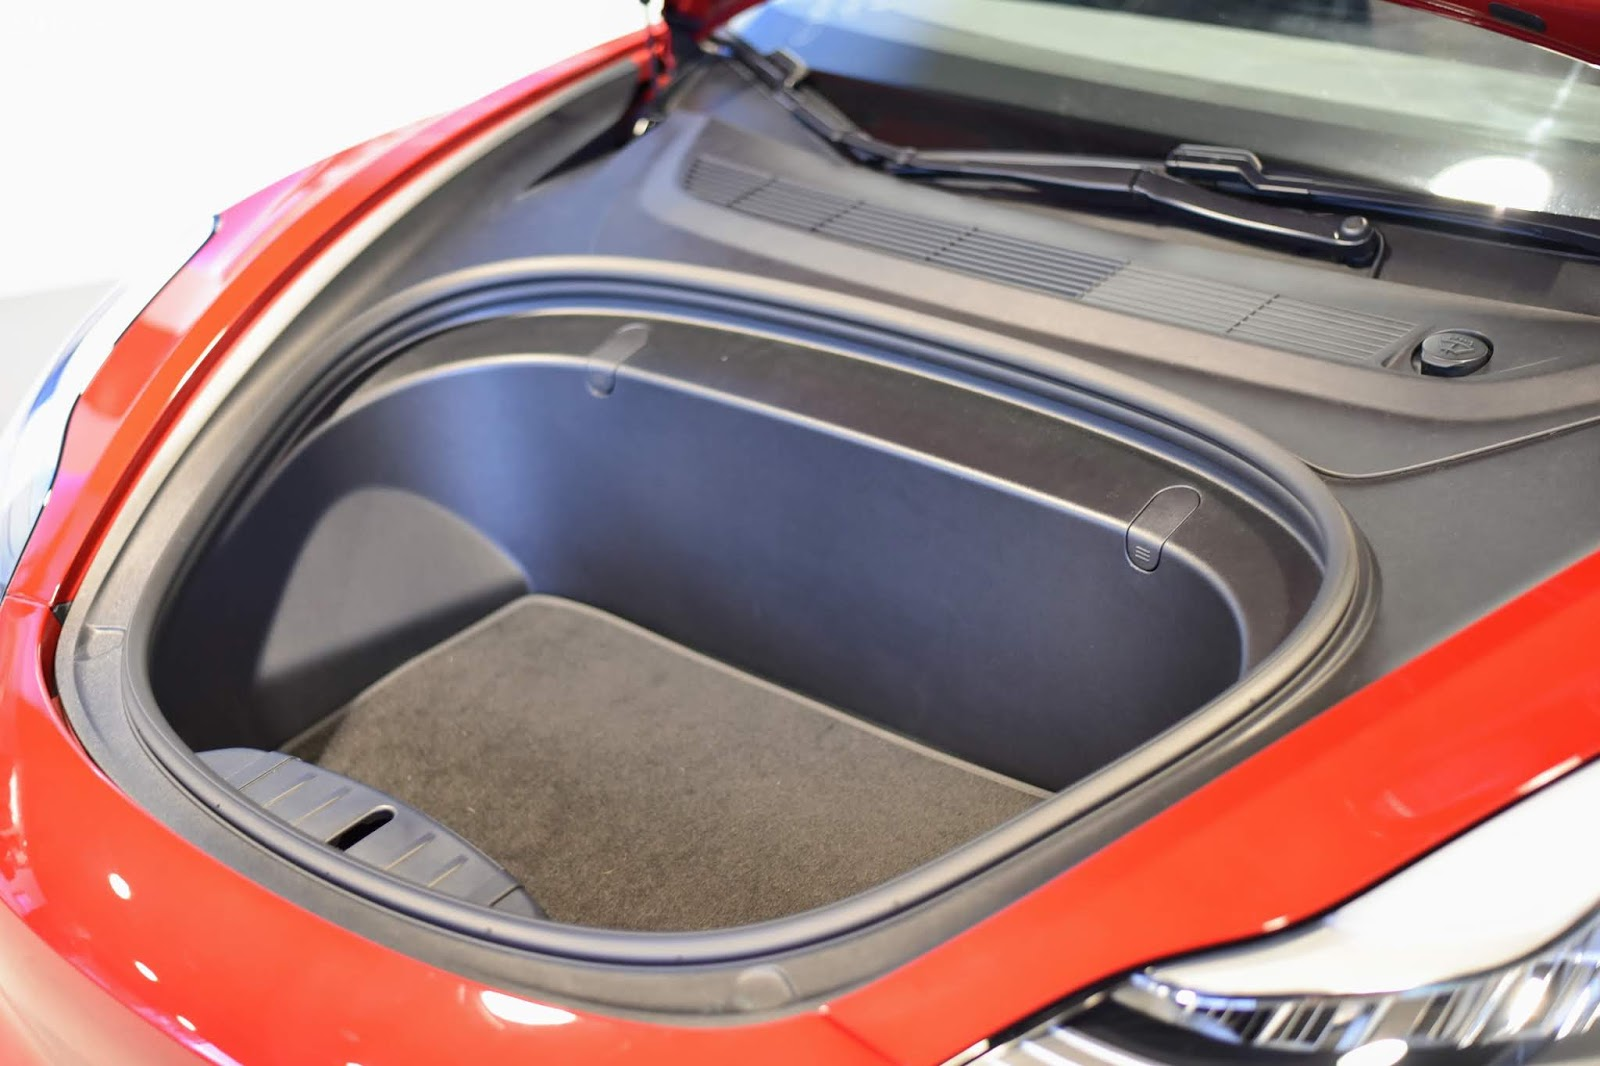 Tesla model 3 front luggage space